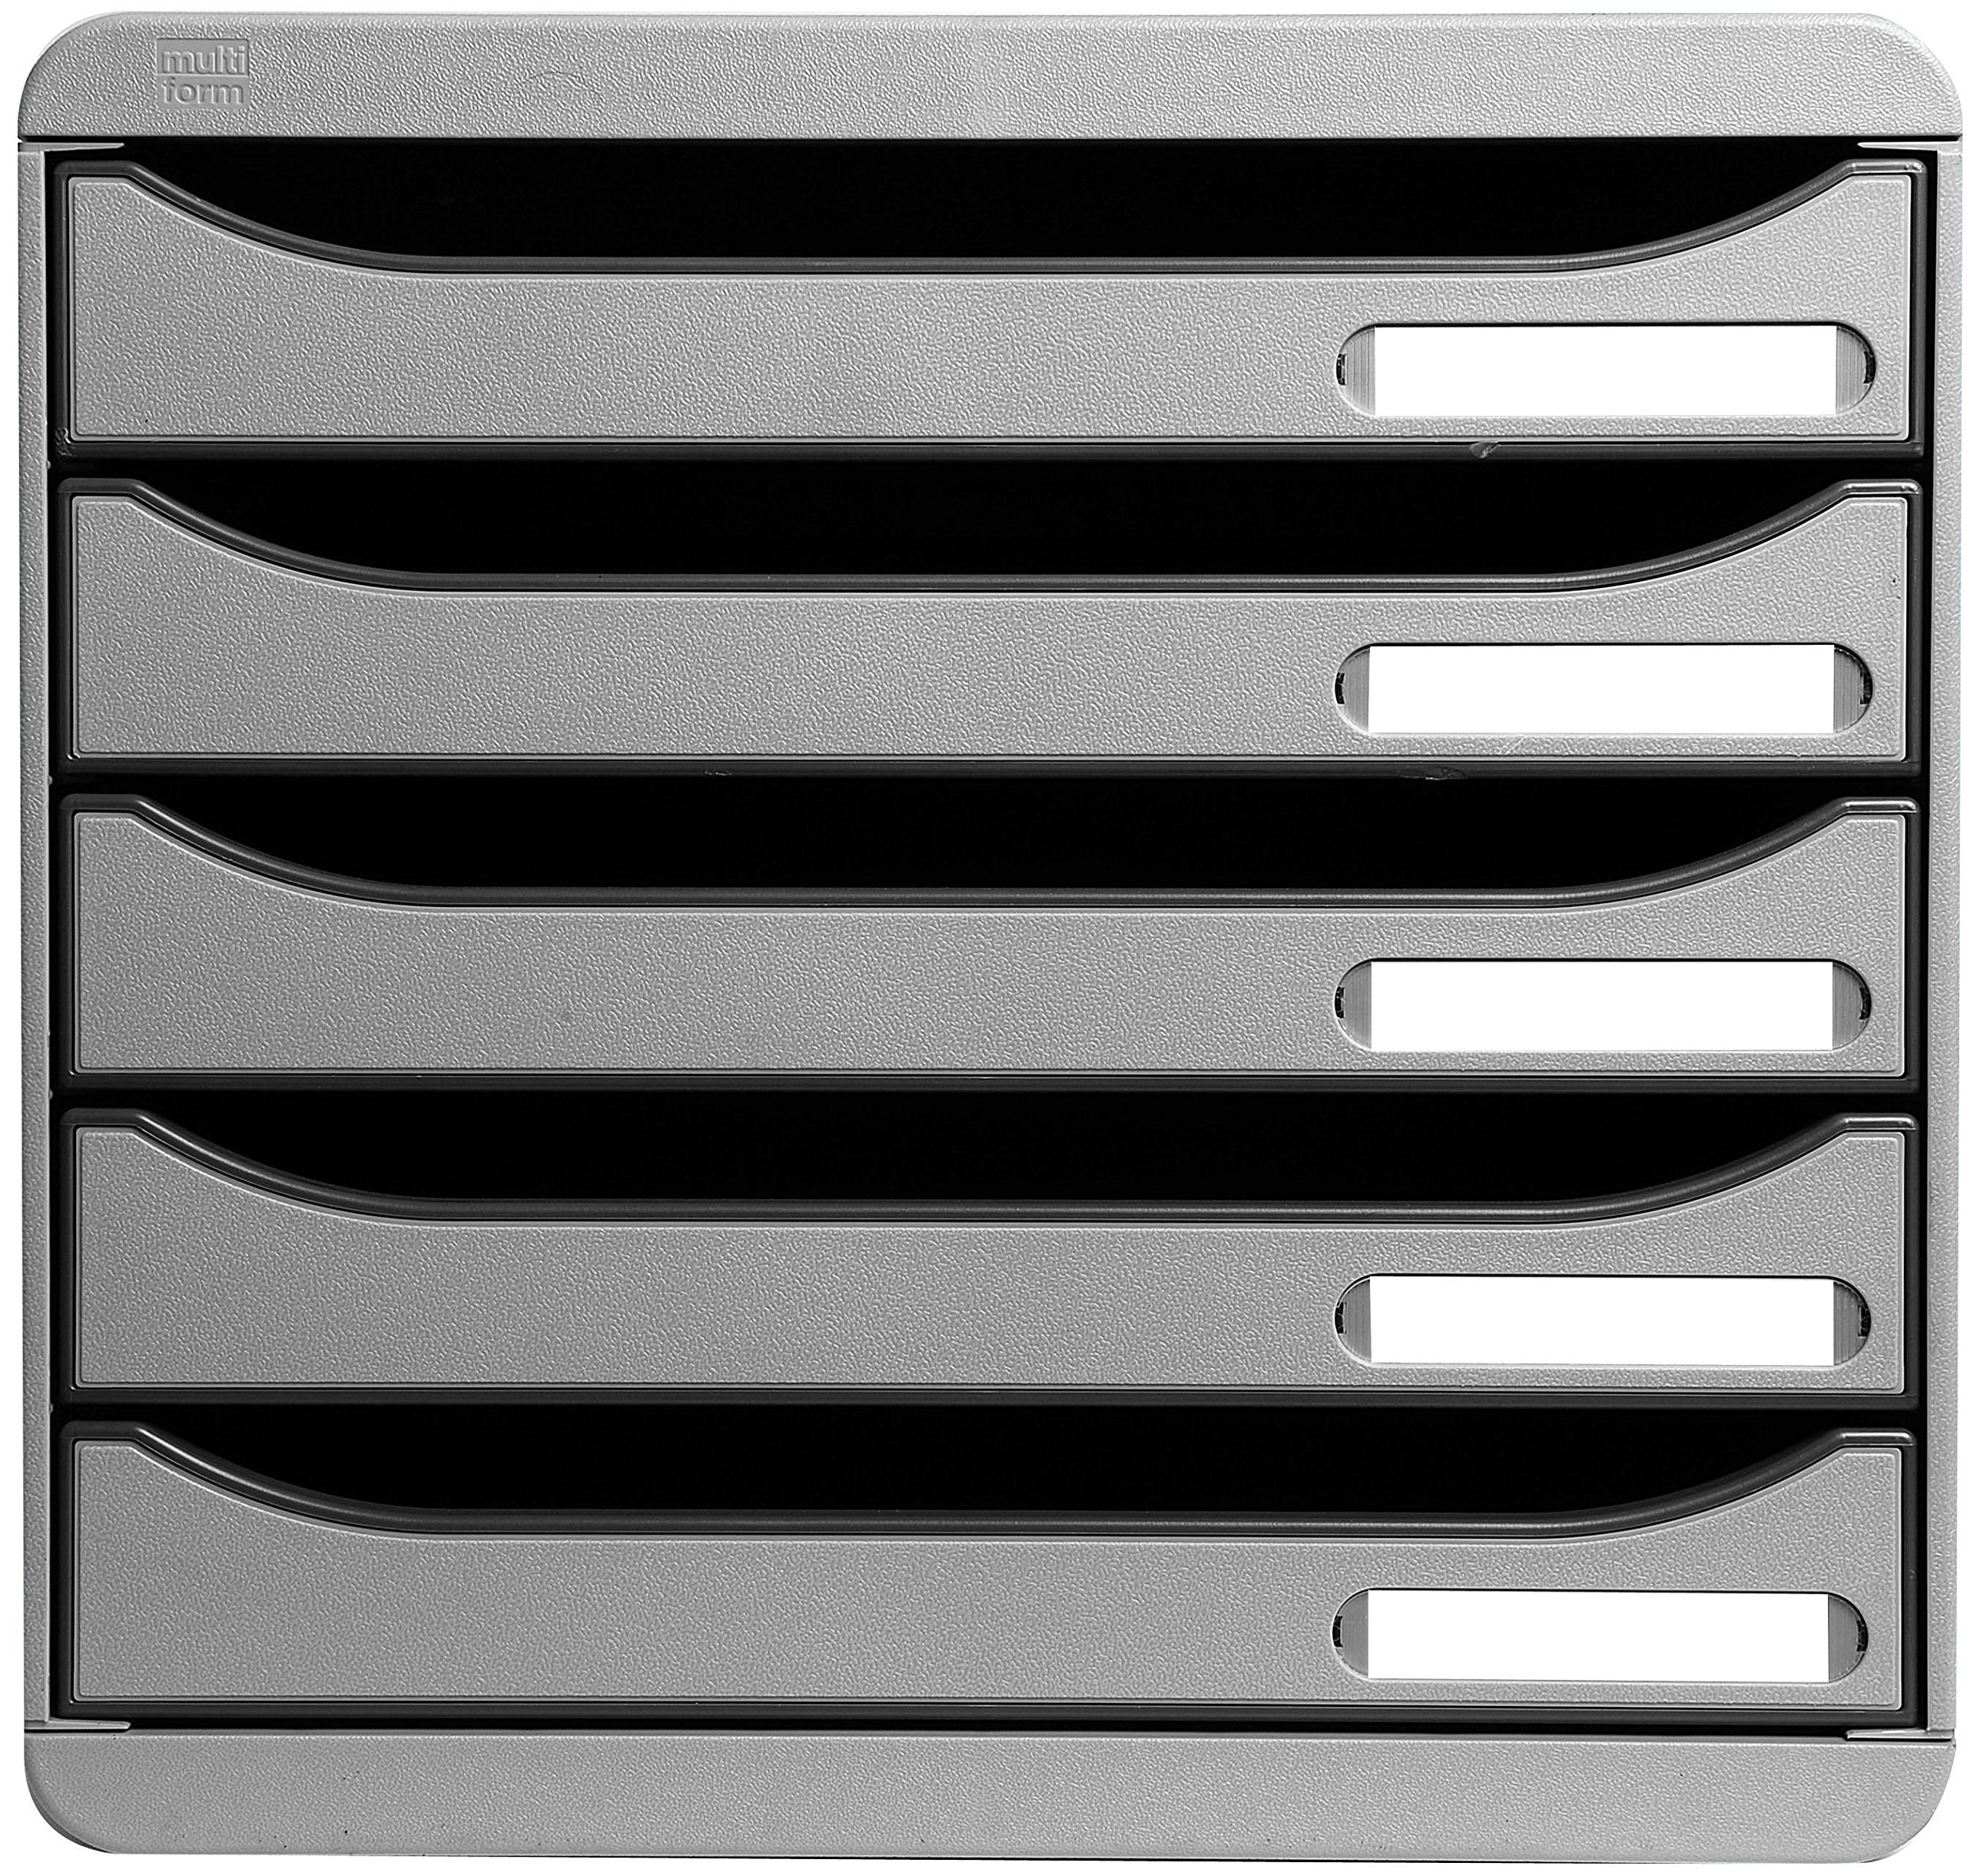 Multiform Big Box Plus Drawer Set Plastic 5 Drawers each H43mm A4plus Light Grey Ref 309740D by Multiform